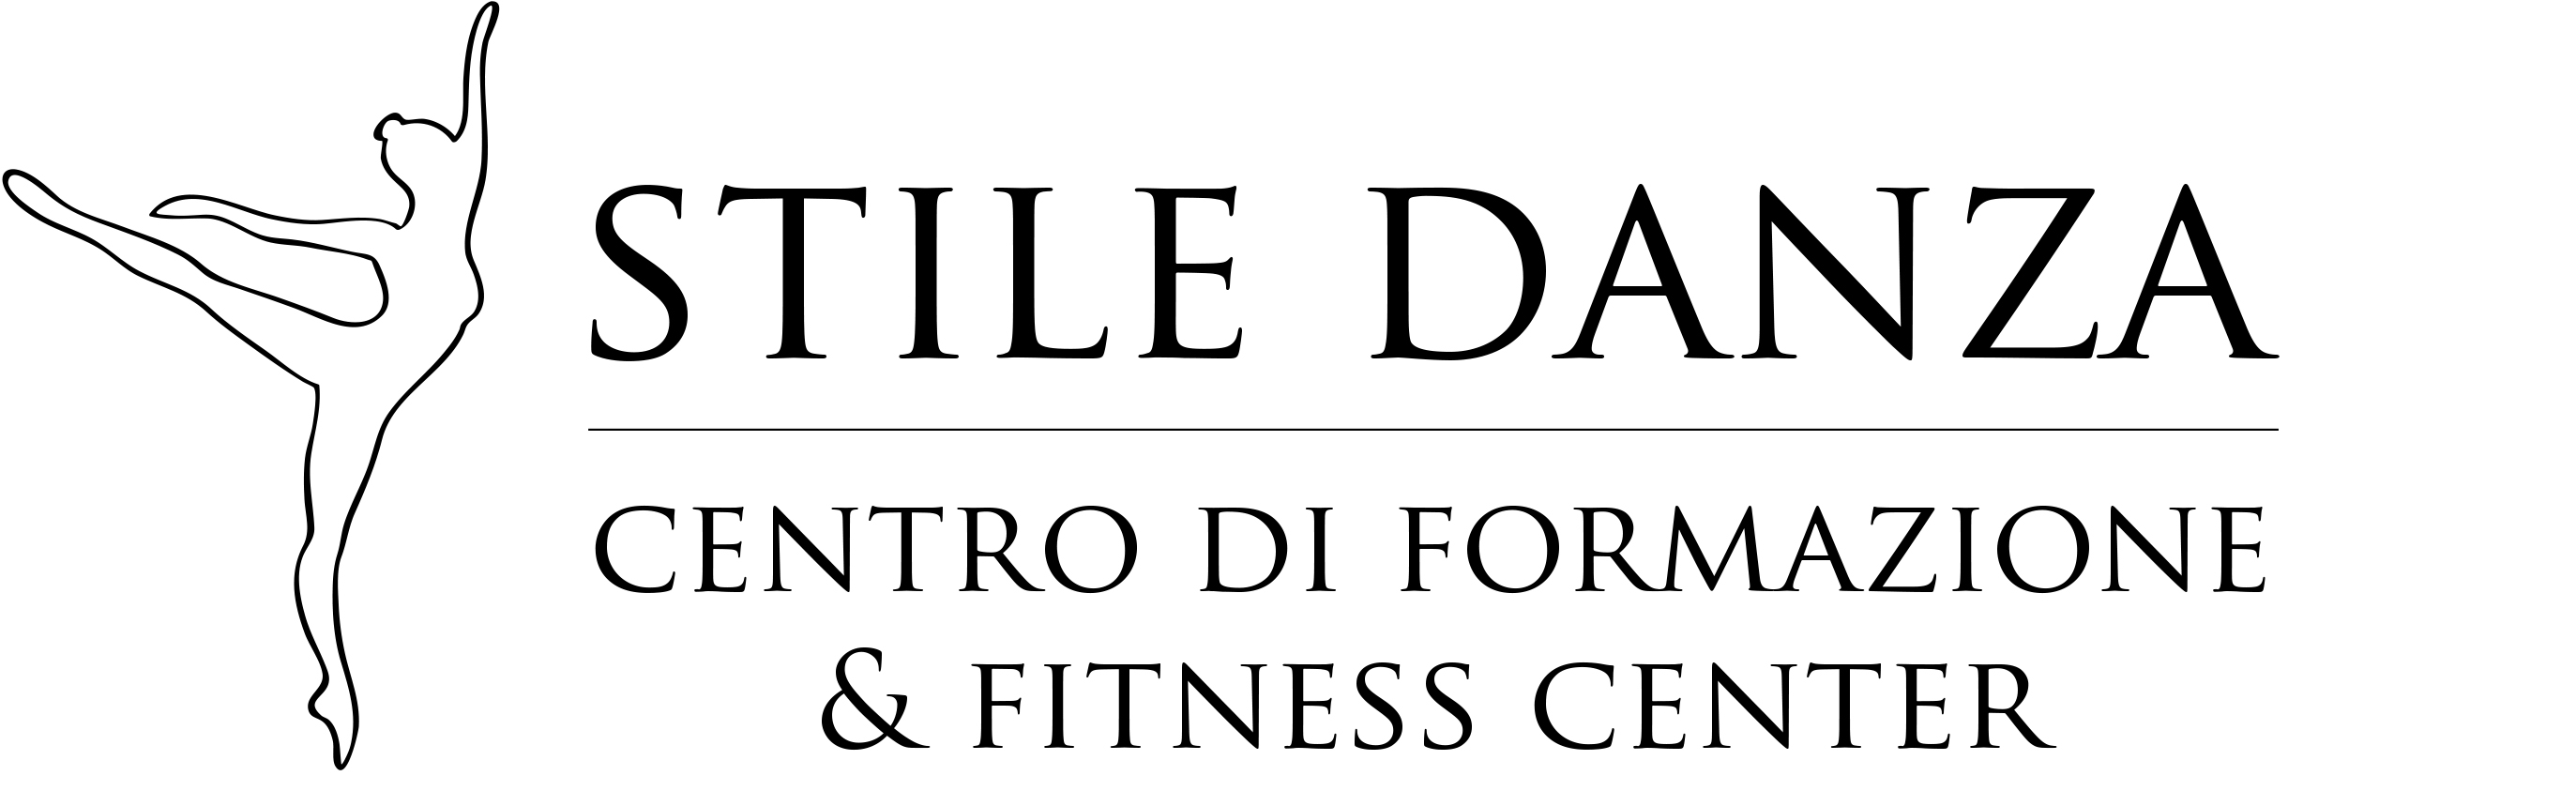 STILE DANZA & FITNESS CENTER